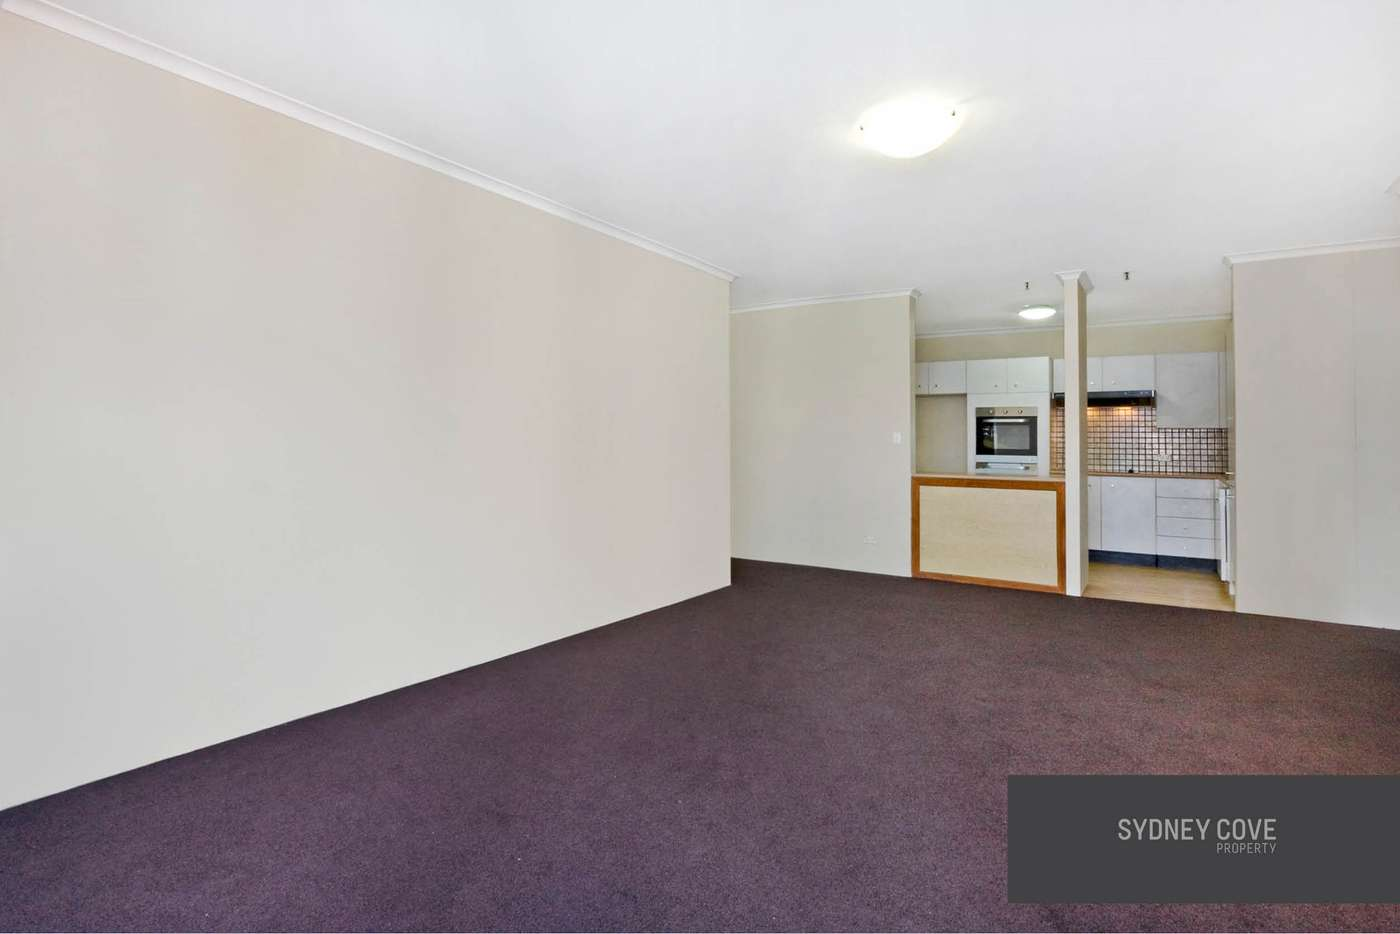 Sixth view of Homely apartment listing, 25 Market, Sydney NSW 2000